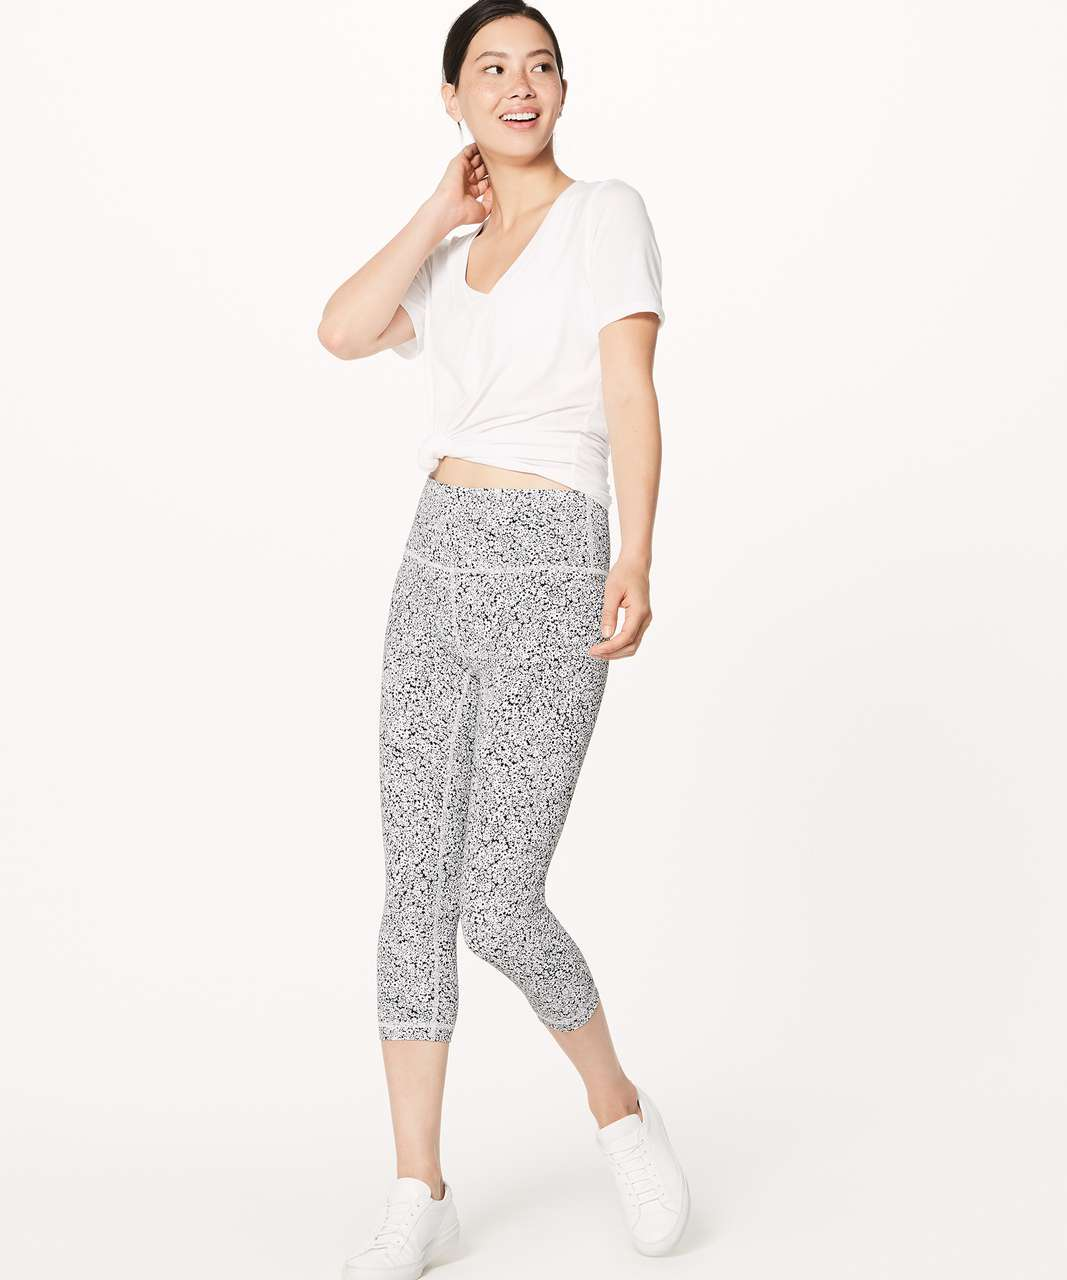 "Lululemon Wunder Under Crop (Hi-Rise) (Full-On Luxtreme 21"") - Ditsy Daisy White Black"